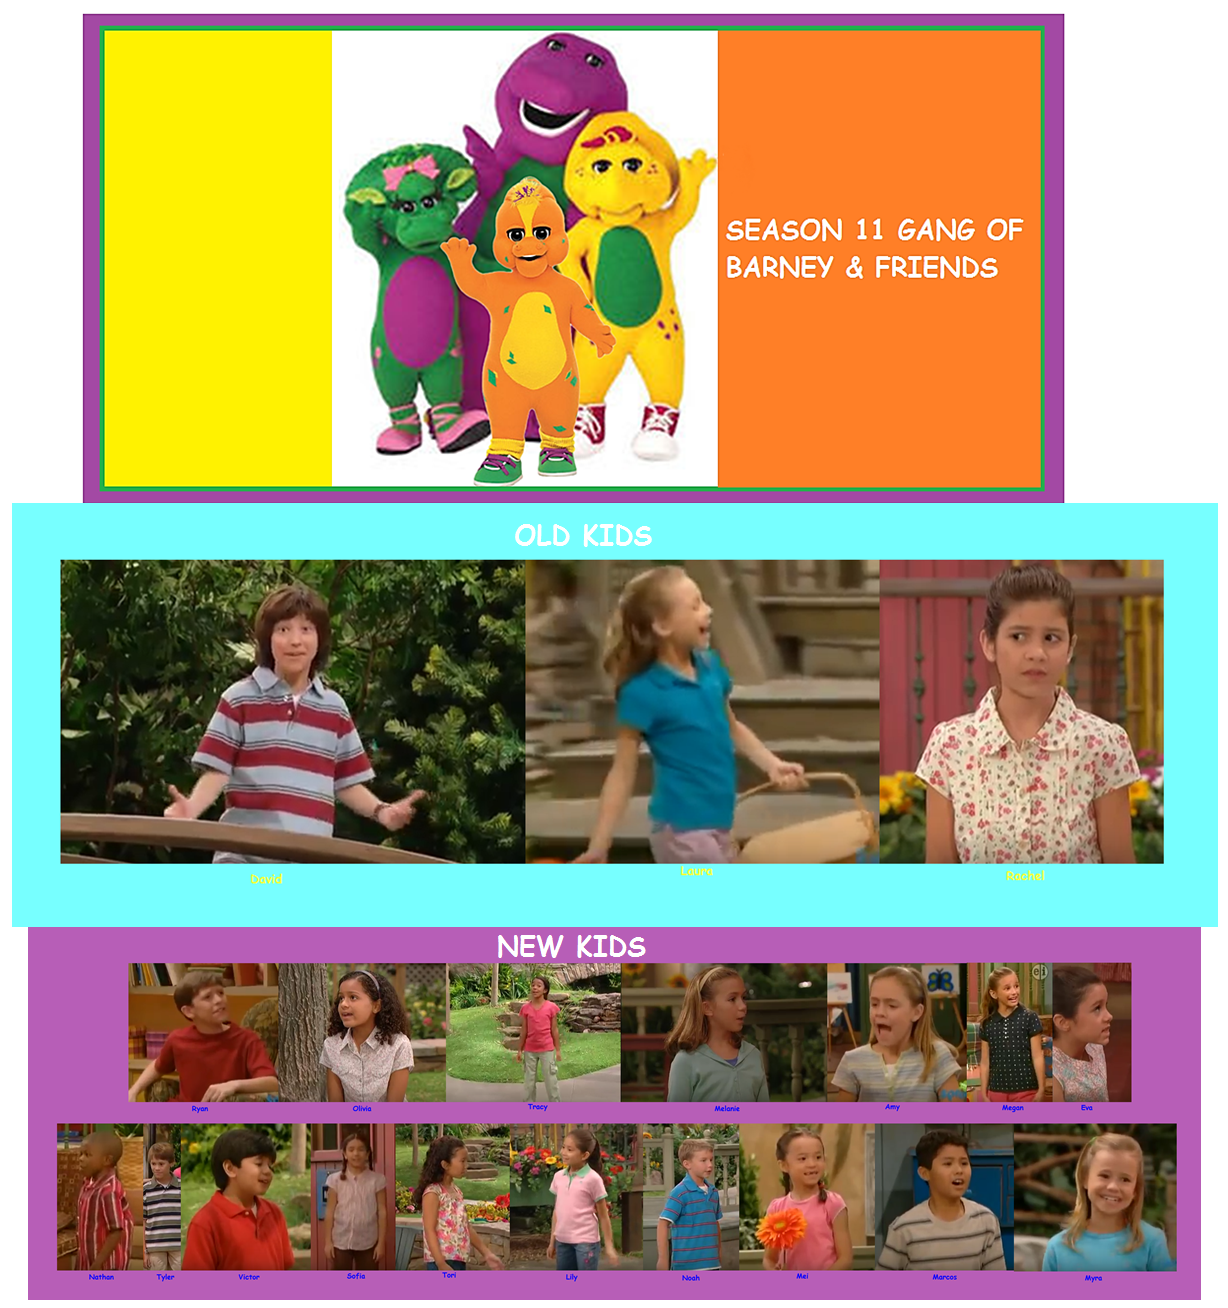 Barney And The Backyard Gang A Day At The Beach: Season 11 Gang Of Barney & Friends (battybarney2014's